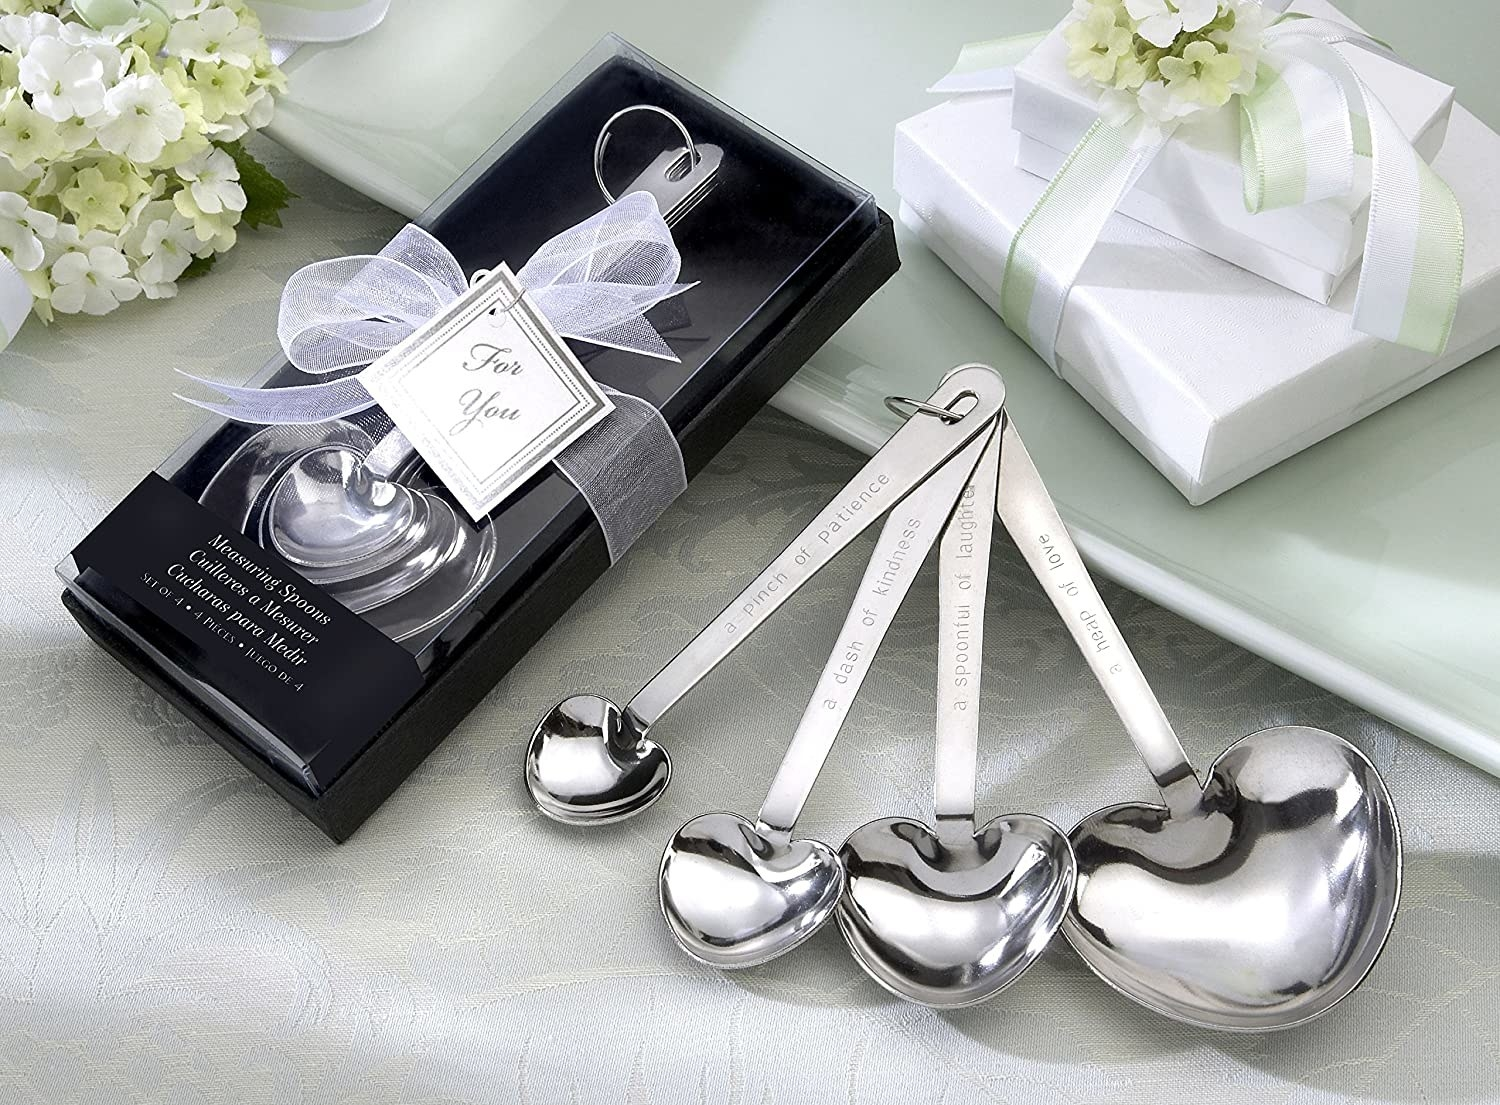 """Four heart-shaped measuring spoons with messages like """"a pinch of patience"""" and """"a dash of kindness"""" on them"""